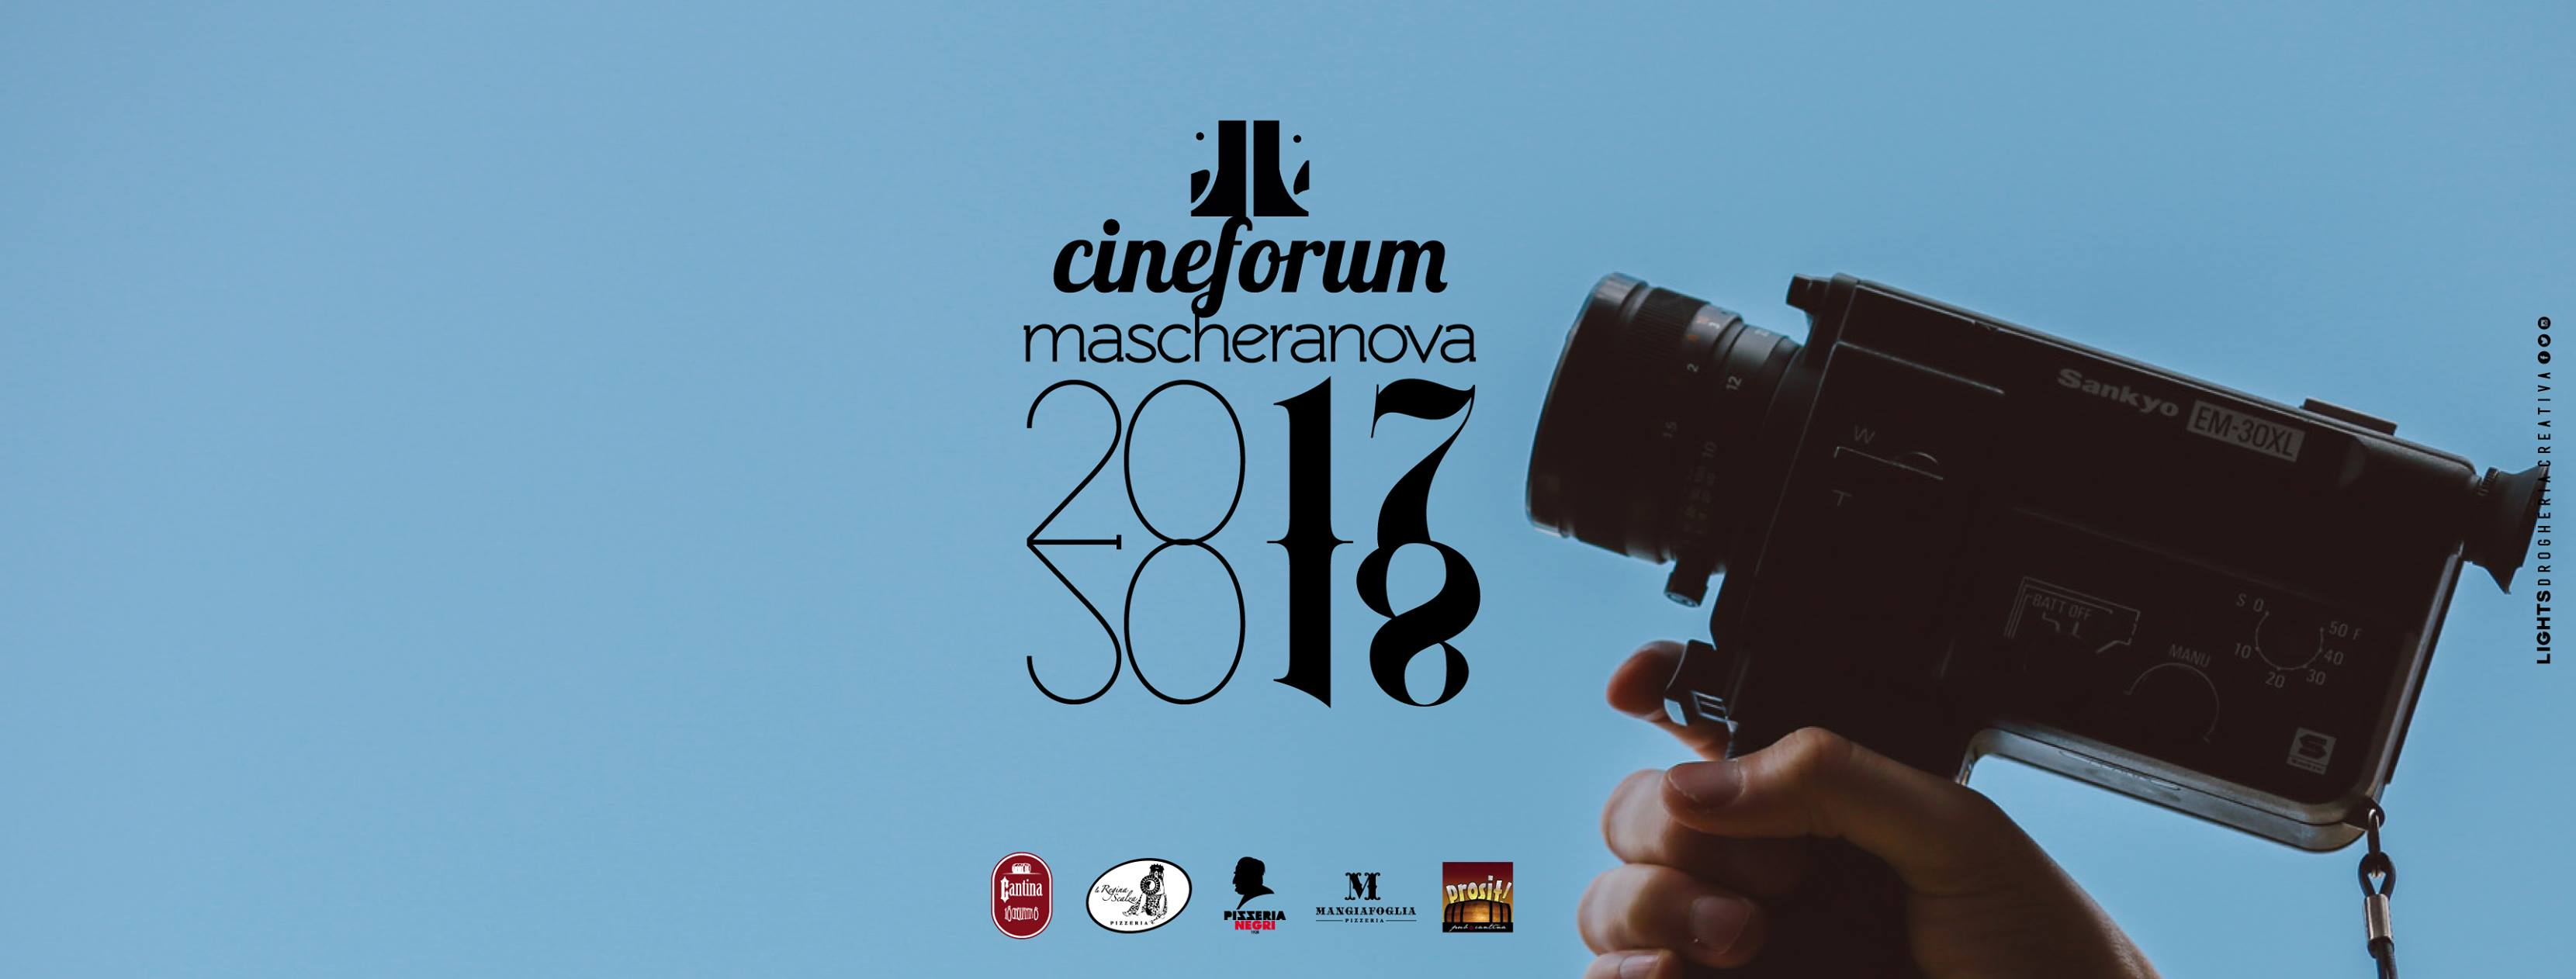 "Cineforum ""Mascheranova"": Il Cinema Contemporaneo Per Tutti"